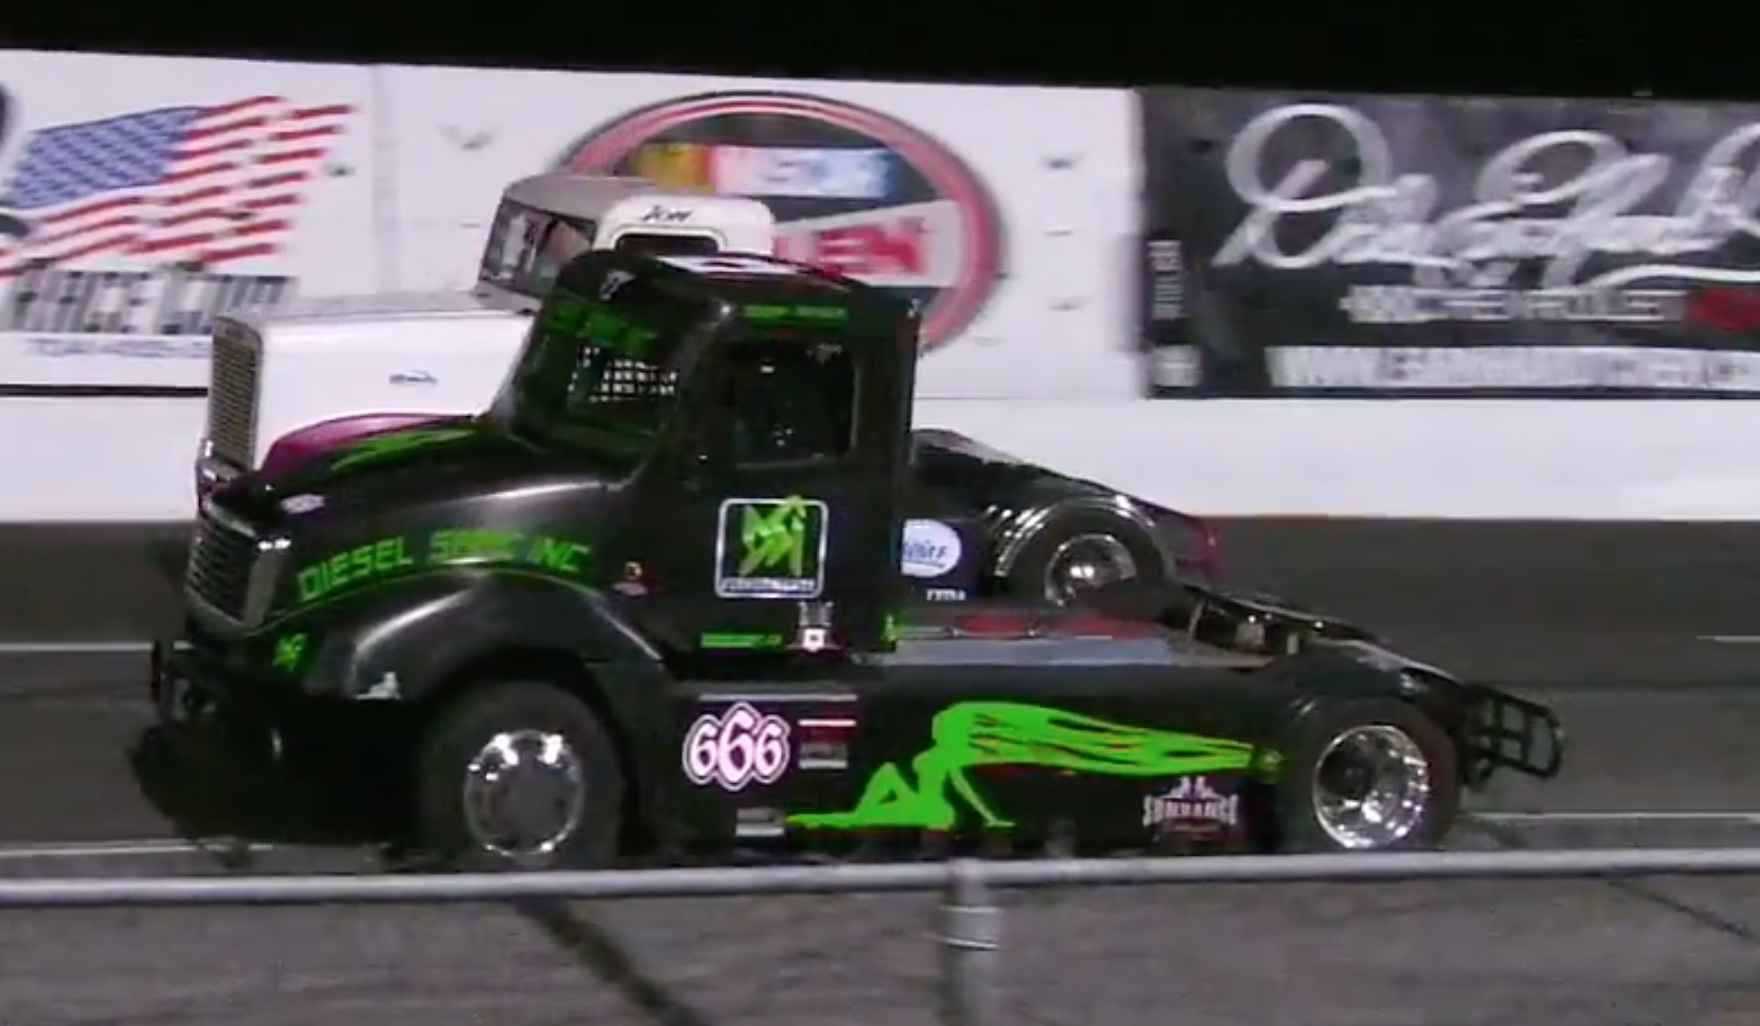 New Bandit truck racing series opens in North Carolina